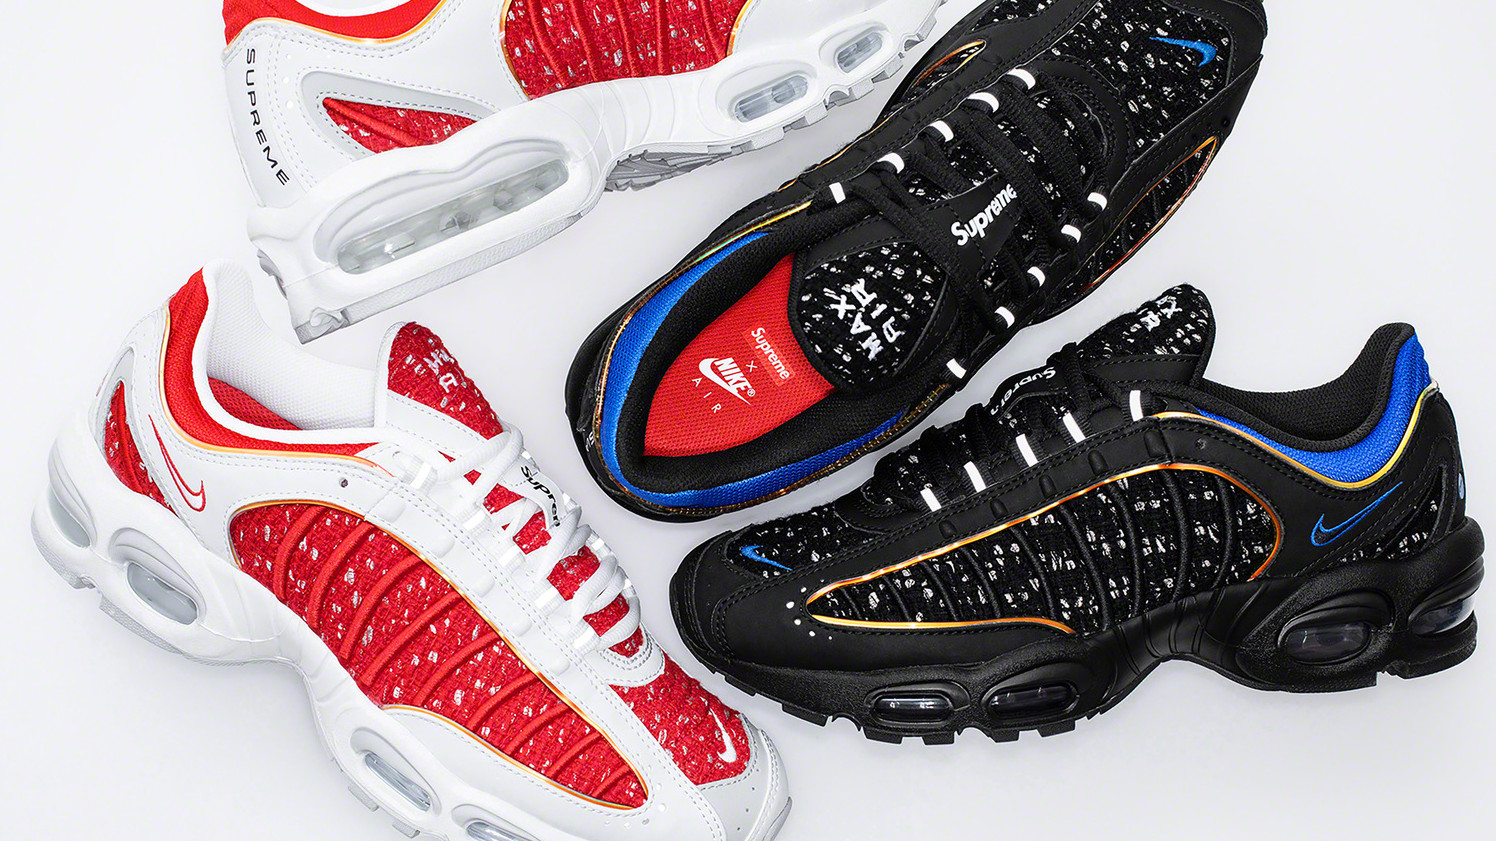 the best attitude e70a8 6f0ca Supreme x Nike Air Max Tailwind 4 Release Date   Sole Collector